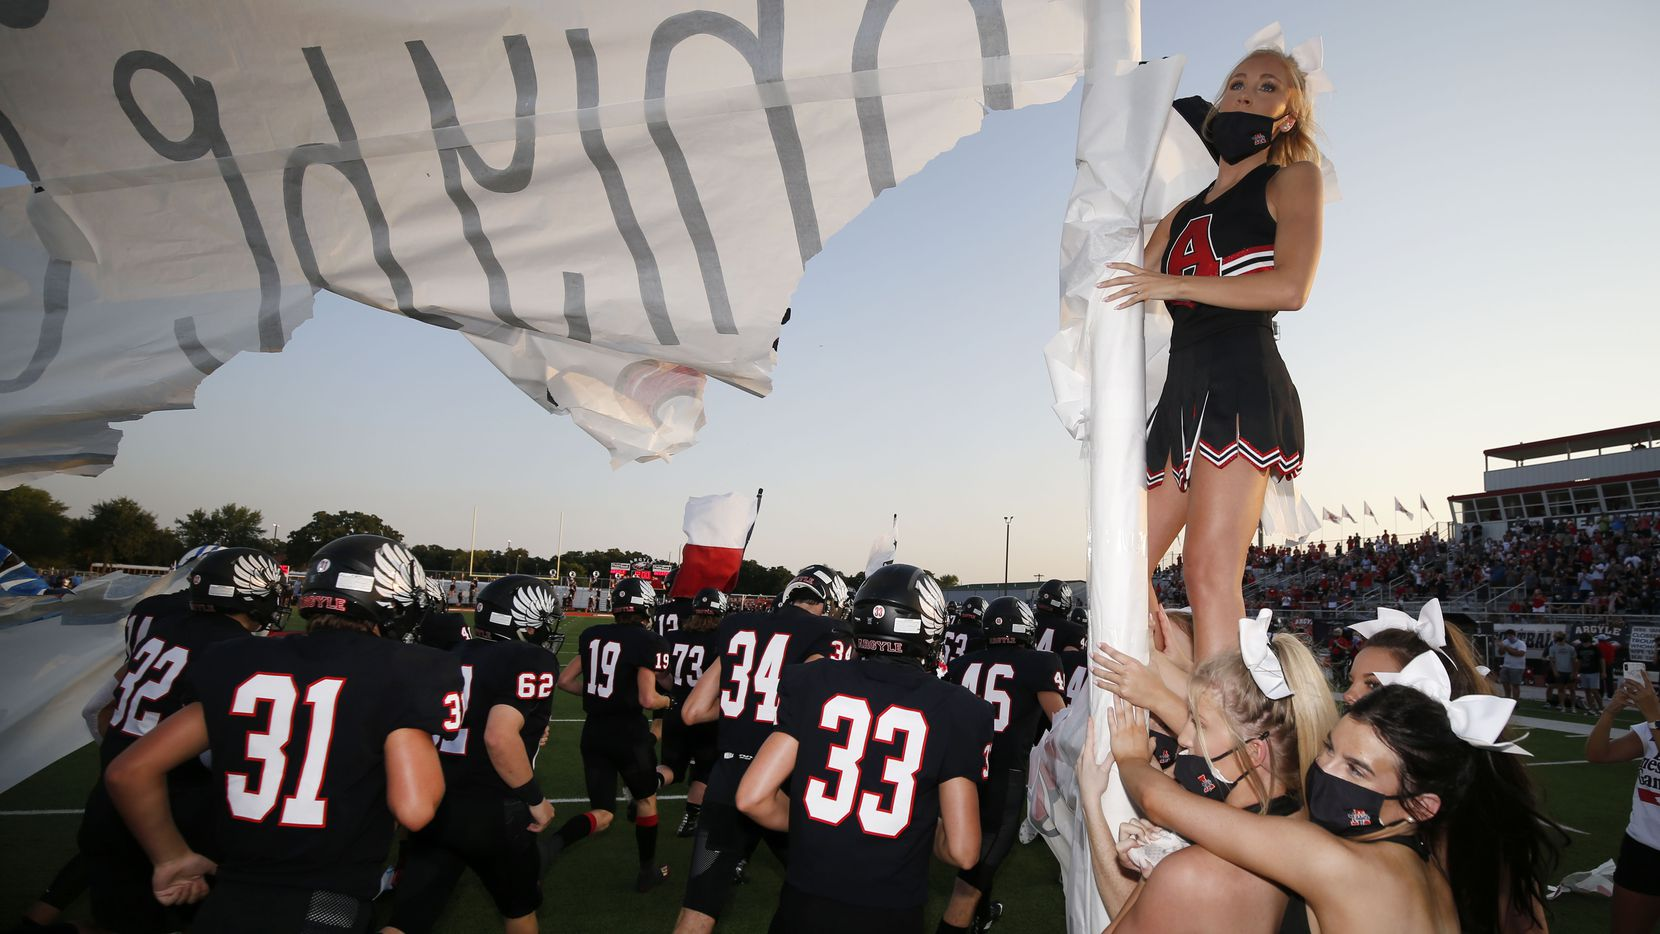 Argyle cheerleaders wear masks while holding a banner that Argyle football players ran through,during a high school football game against Decatur,  in Argyle, Tx, on August 28, 2020.